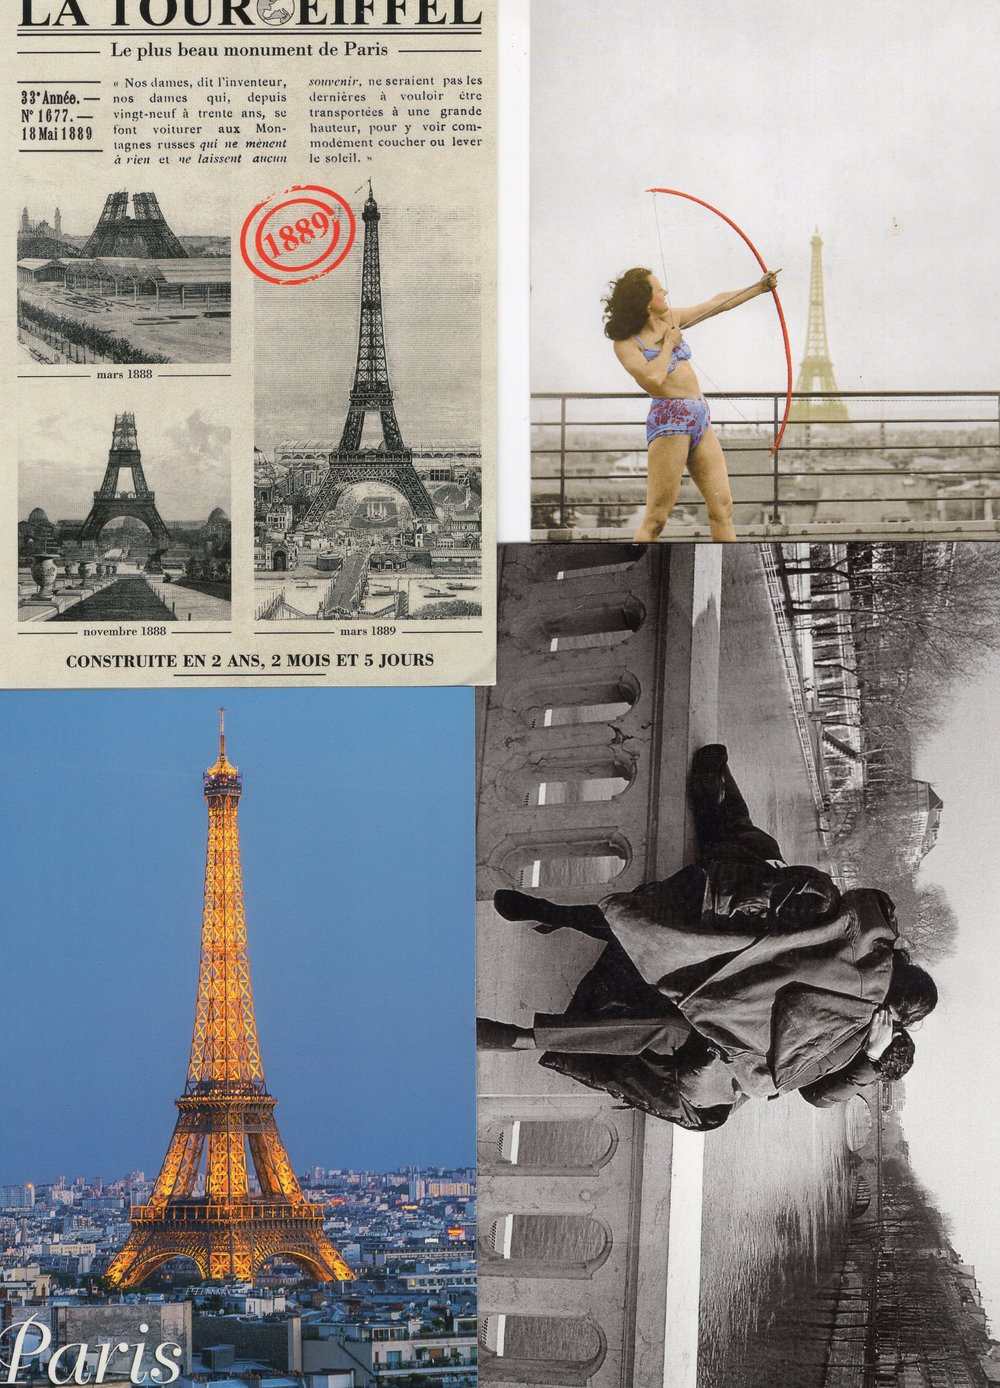 POSTCARDS - Something to write home aboutBy Maria Sofia Hernandez, Nicole Chan, and Kristen Chiu